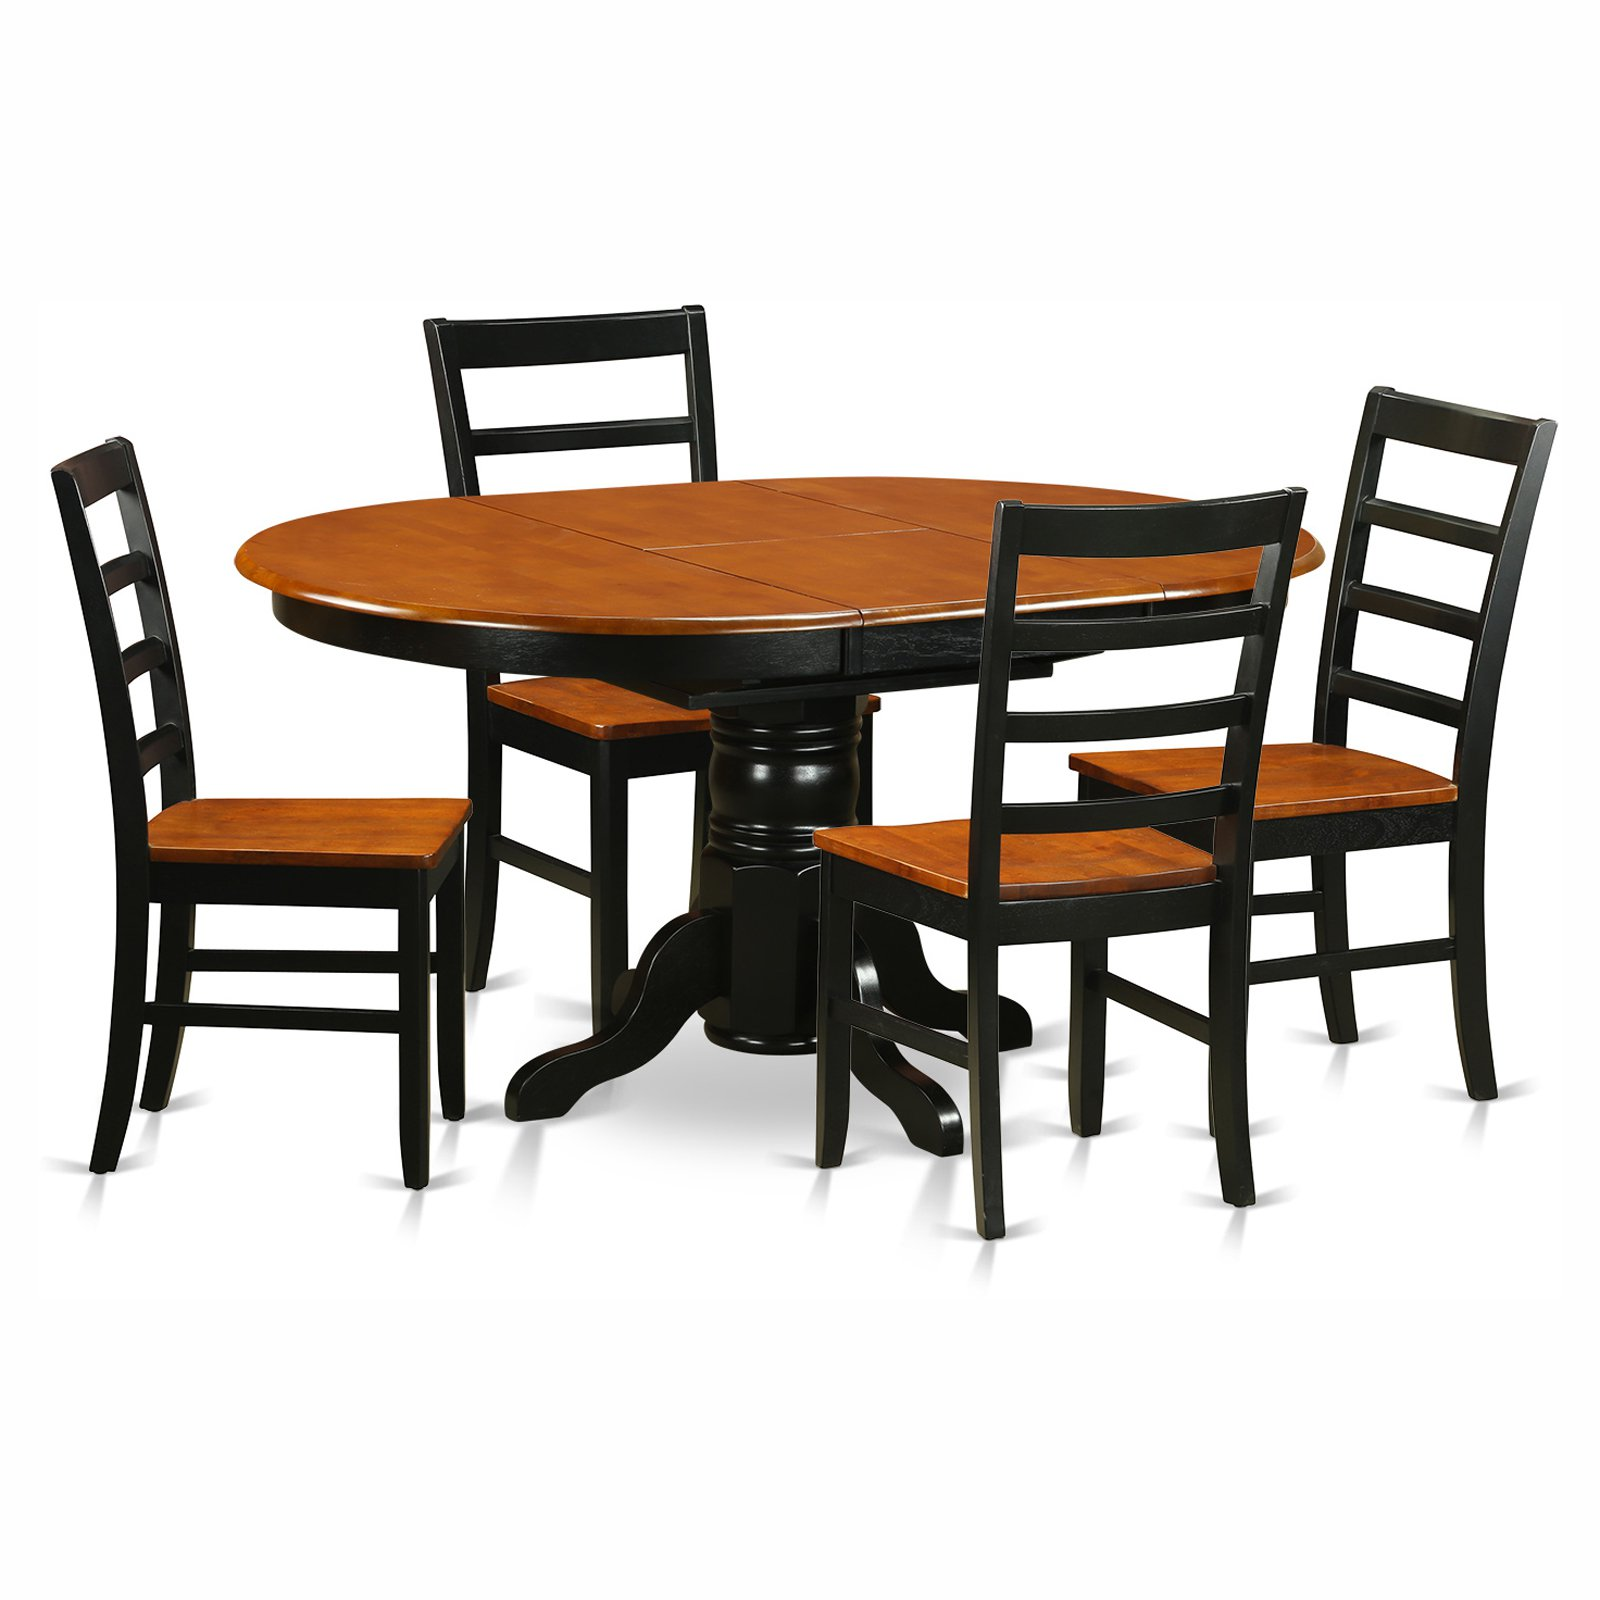 Avon 5 Piece Pedestal Oval Dining Table Set With Parfait Wooden Seat Chairs Walmart Com Walmart Com